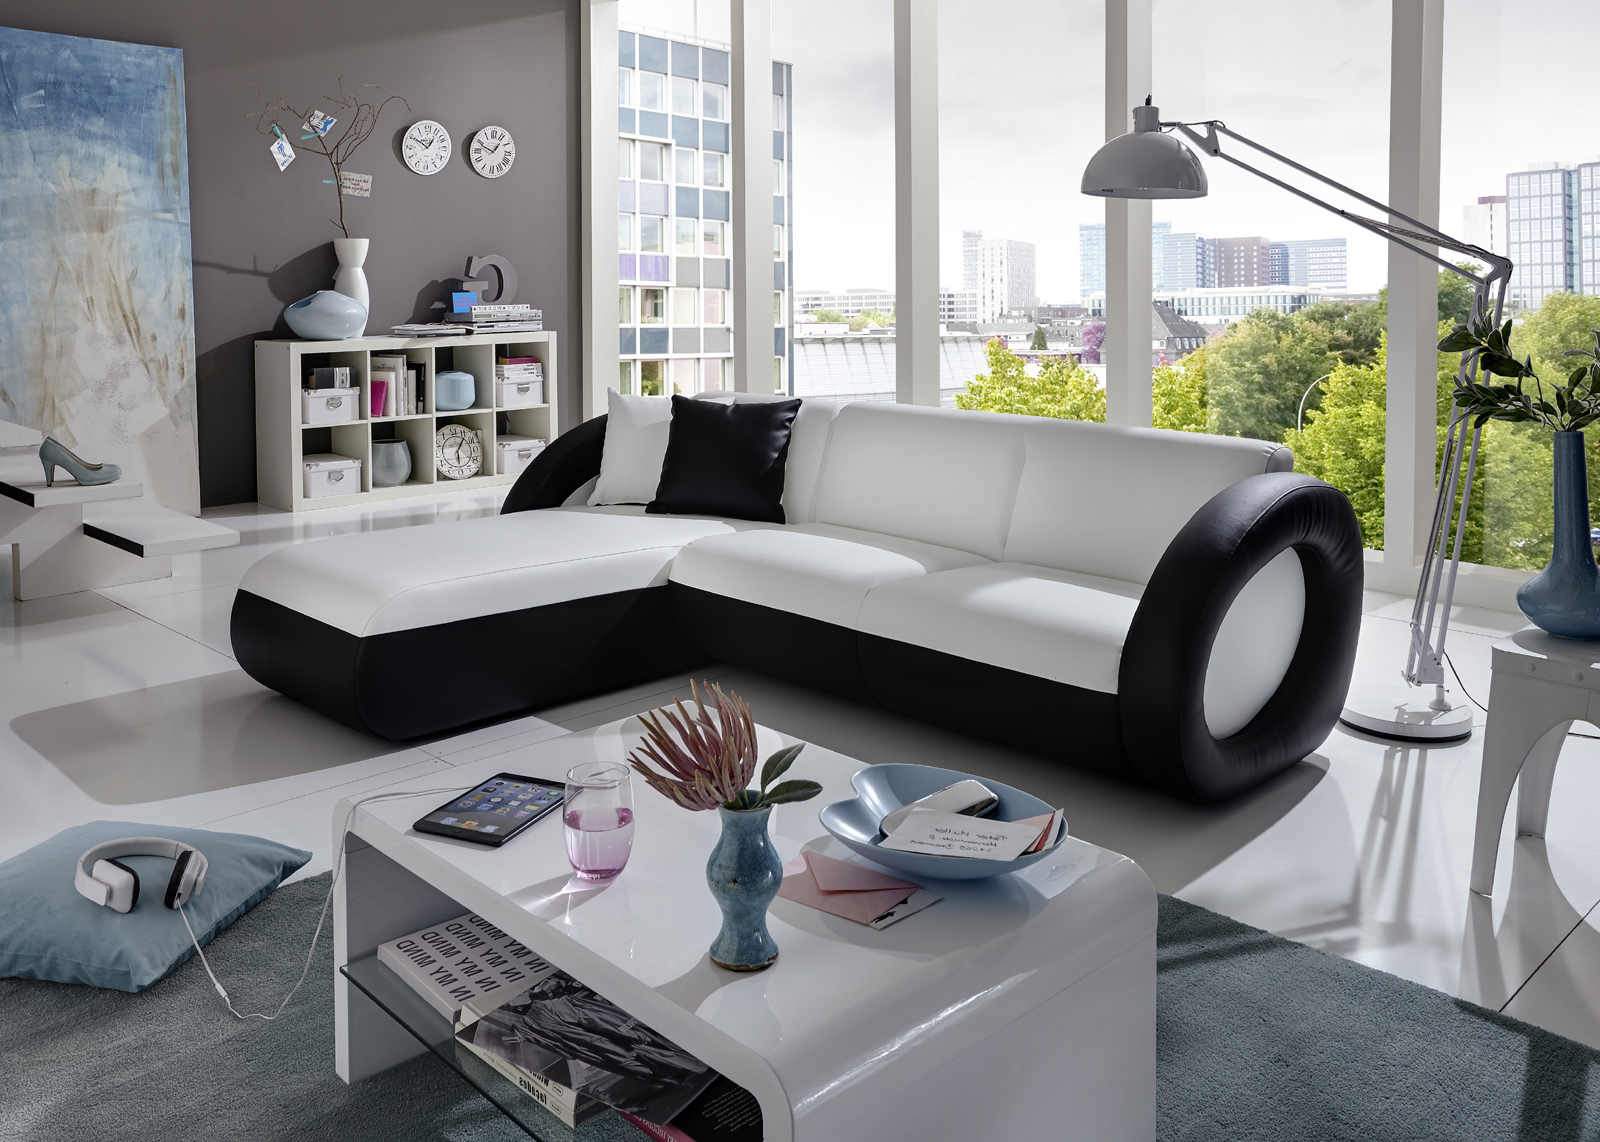 wohnzimmer ideen dunkle mobel. Black Bedroom Furniture Sets. Home Design Ideas